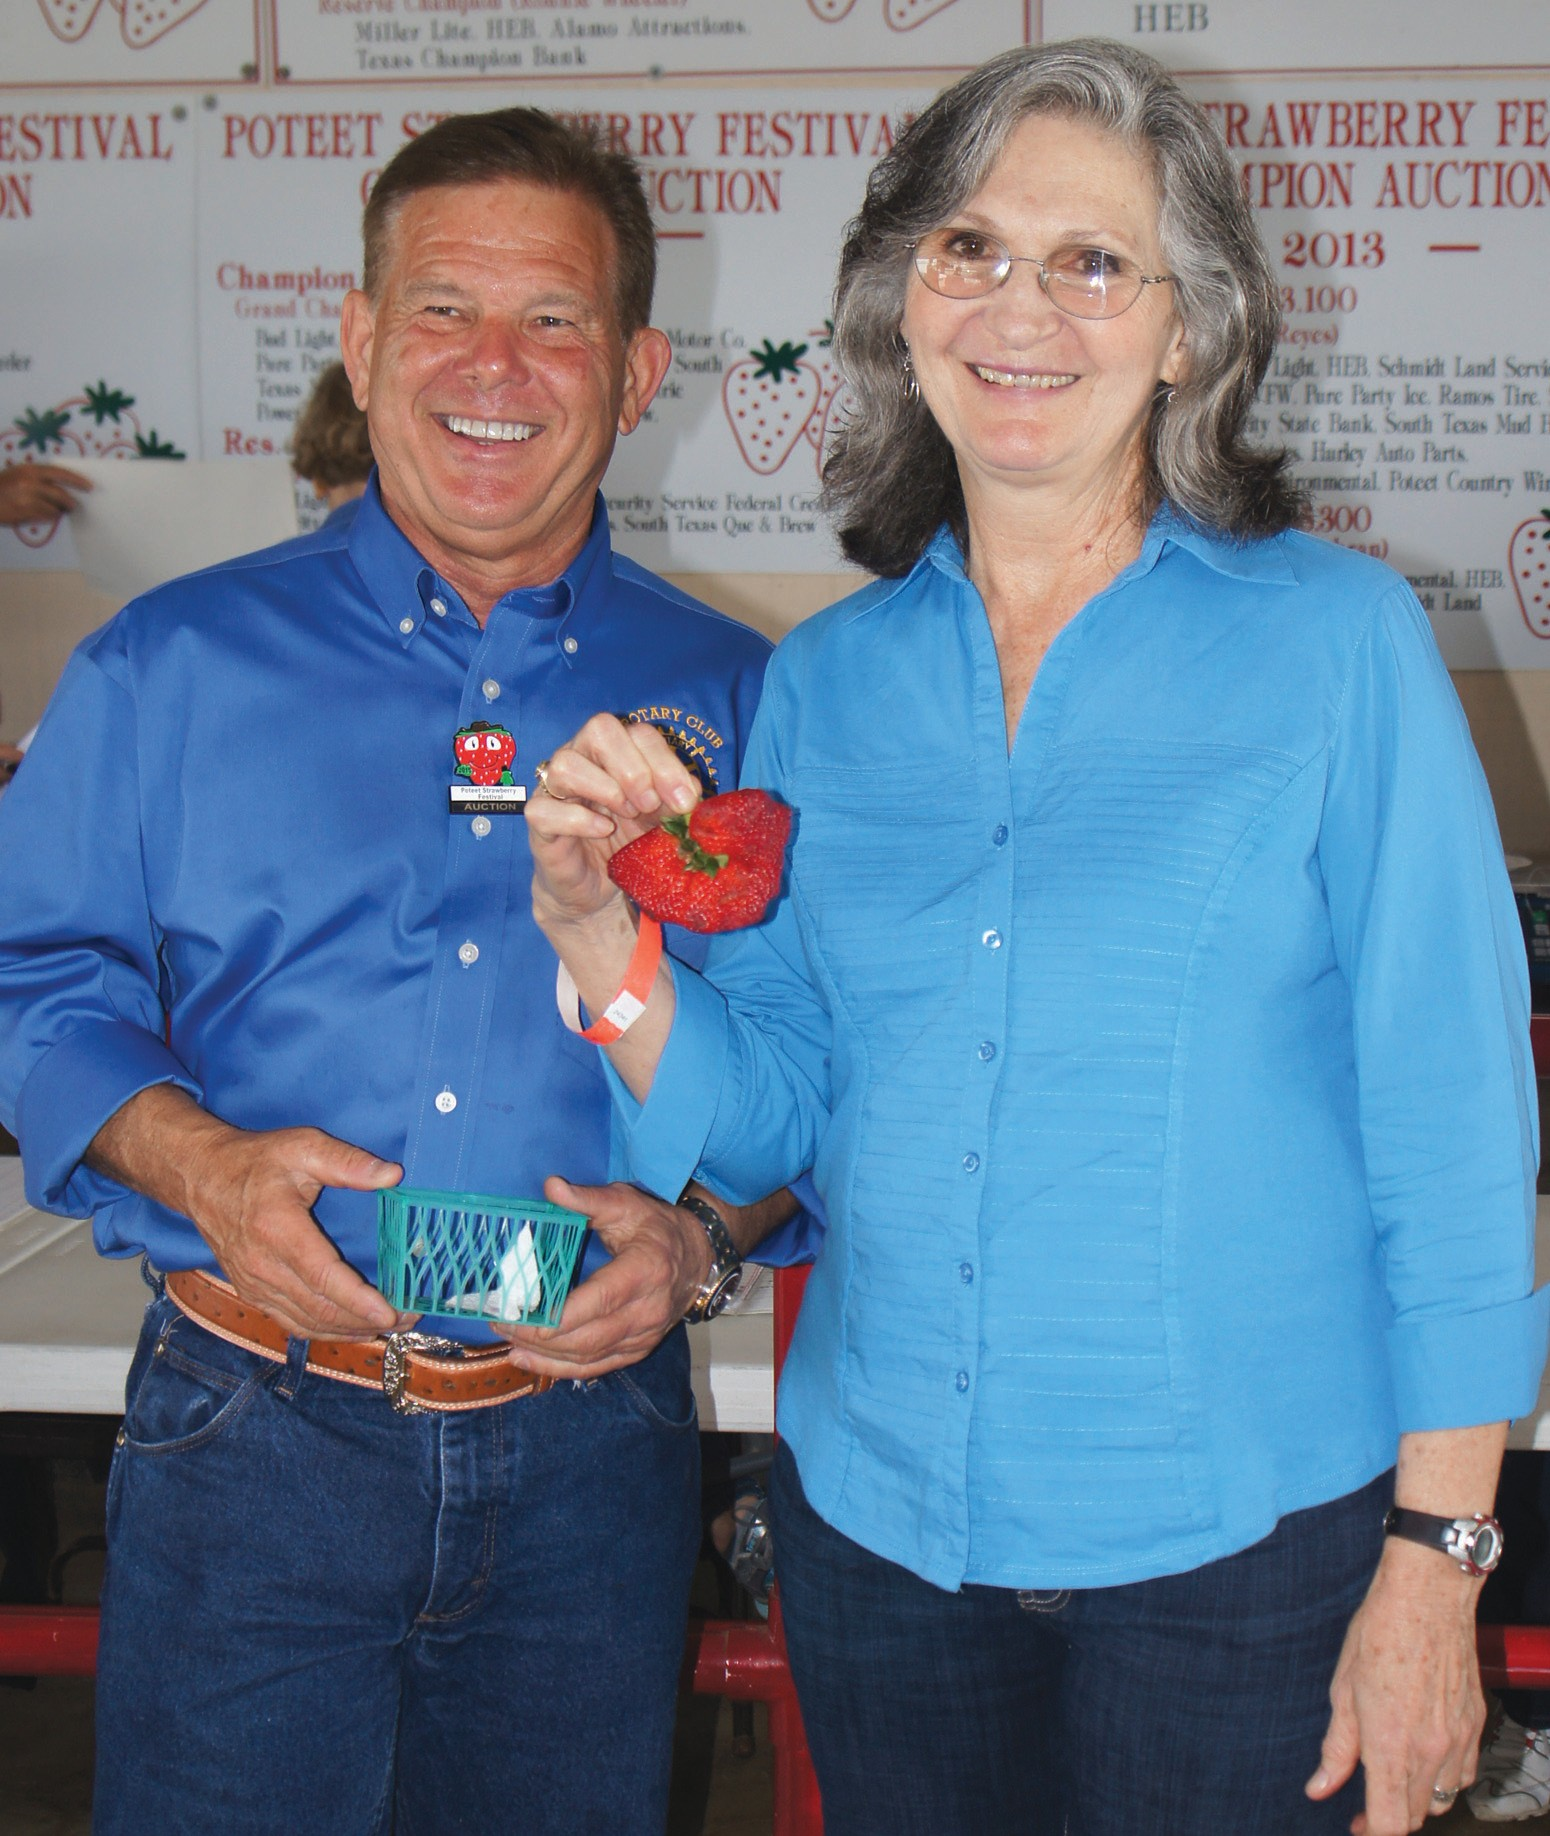 Jeff Jacobs, D.D.S. at Southern Smiles sponsors the Biggest Berry contest. This year's winner is Linda Wheeler. Her berry weighed .25 pounds.